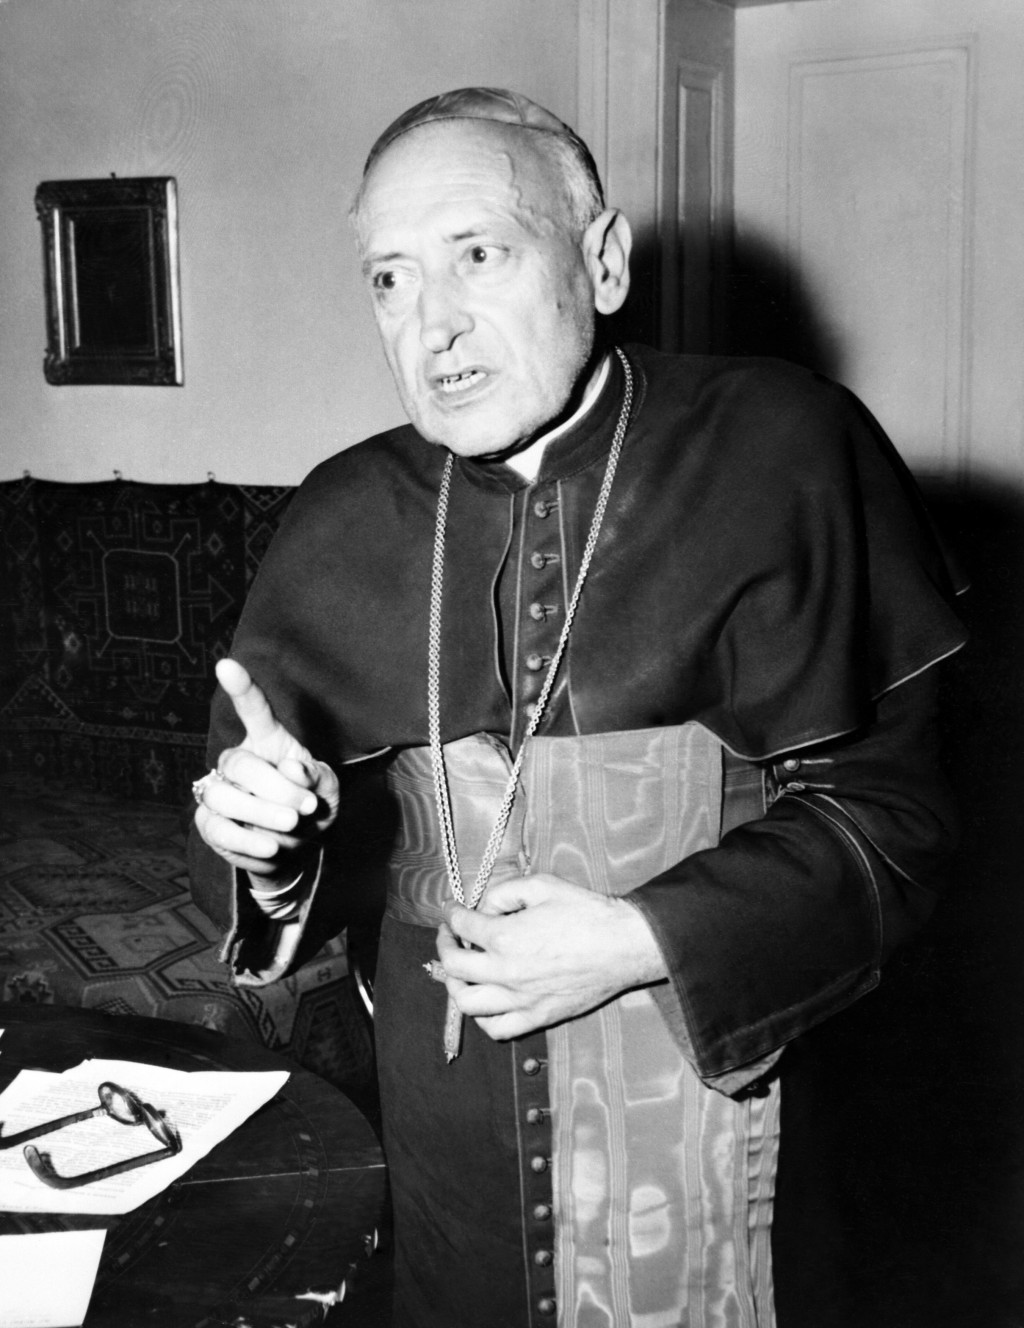 FILE - This Oct. 31, 1956 black and white file photo shows Hungarian Cardinal Jozsef Mindszenty, freed after more than seven years in a communist jail